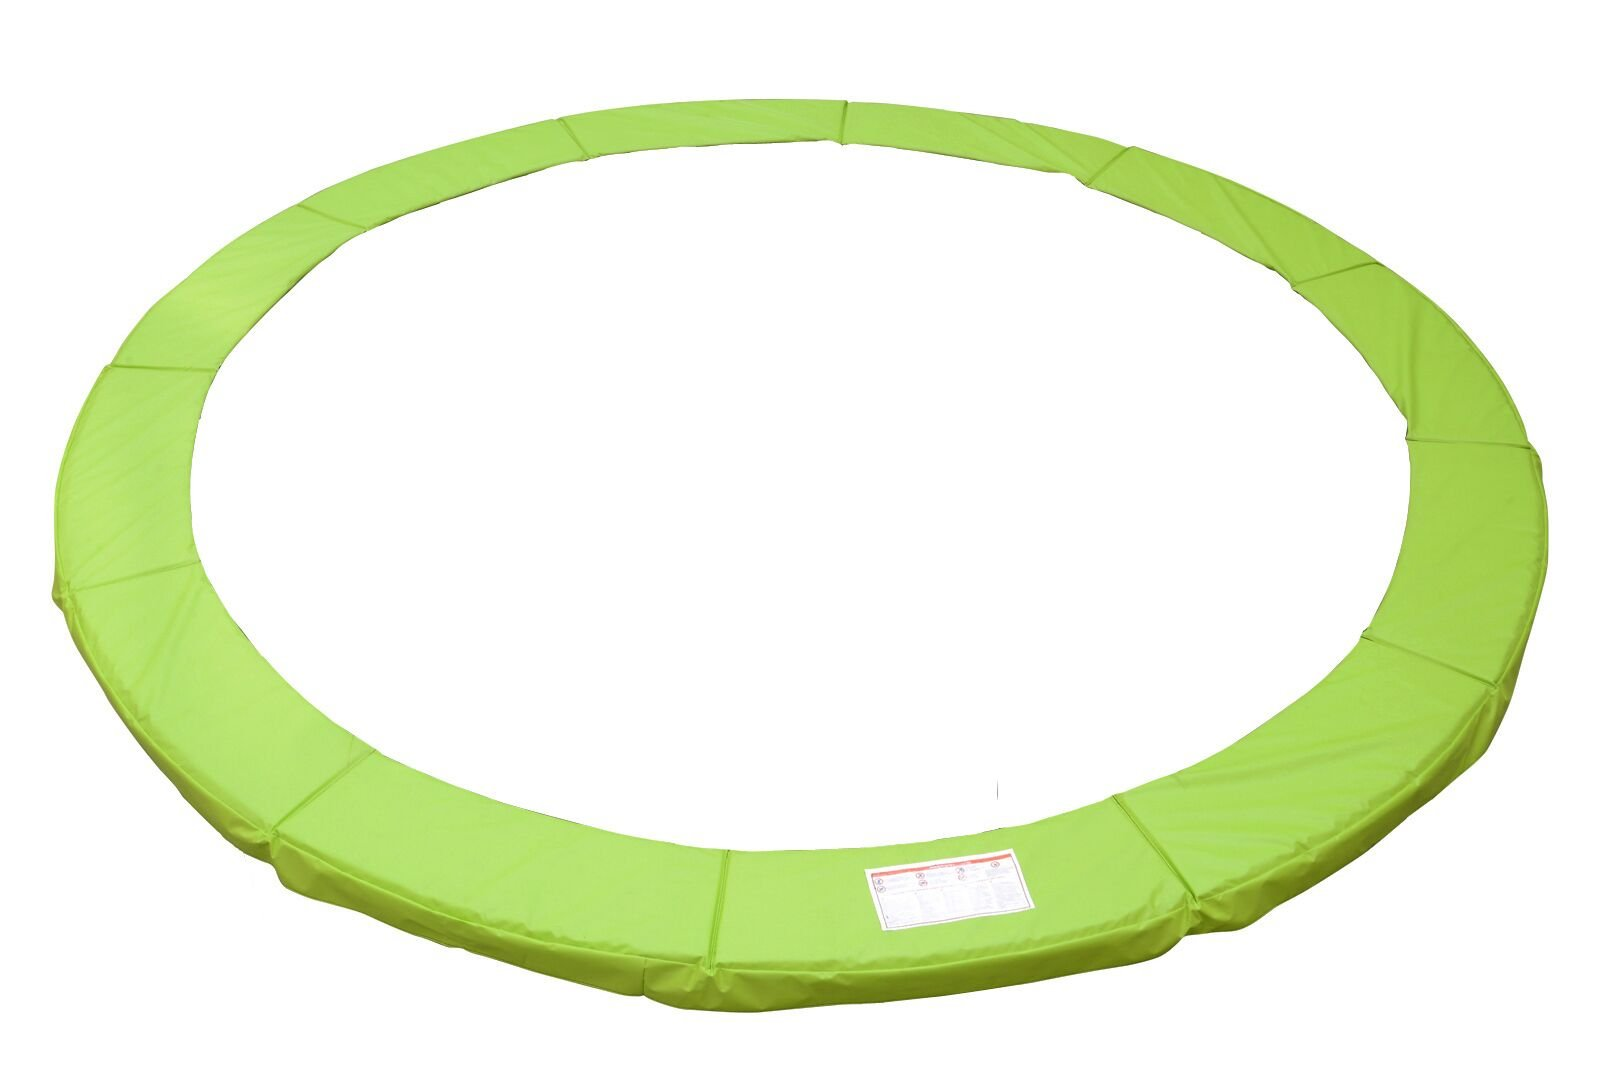 Exacme Trampoline Replacement Safety Pad Frame Spring Light Green Color Round Cover (15 ft) by Exacme